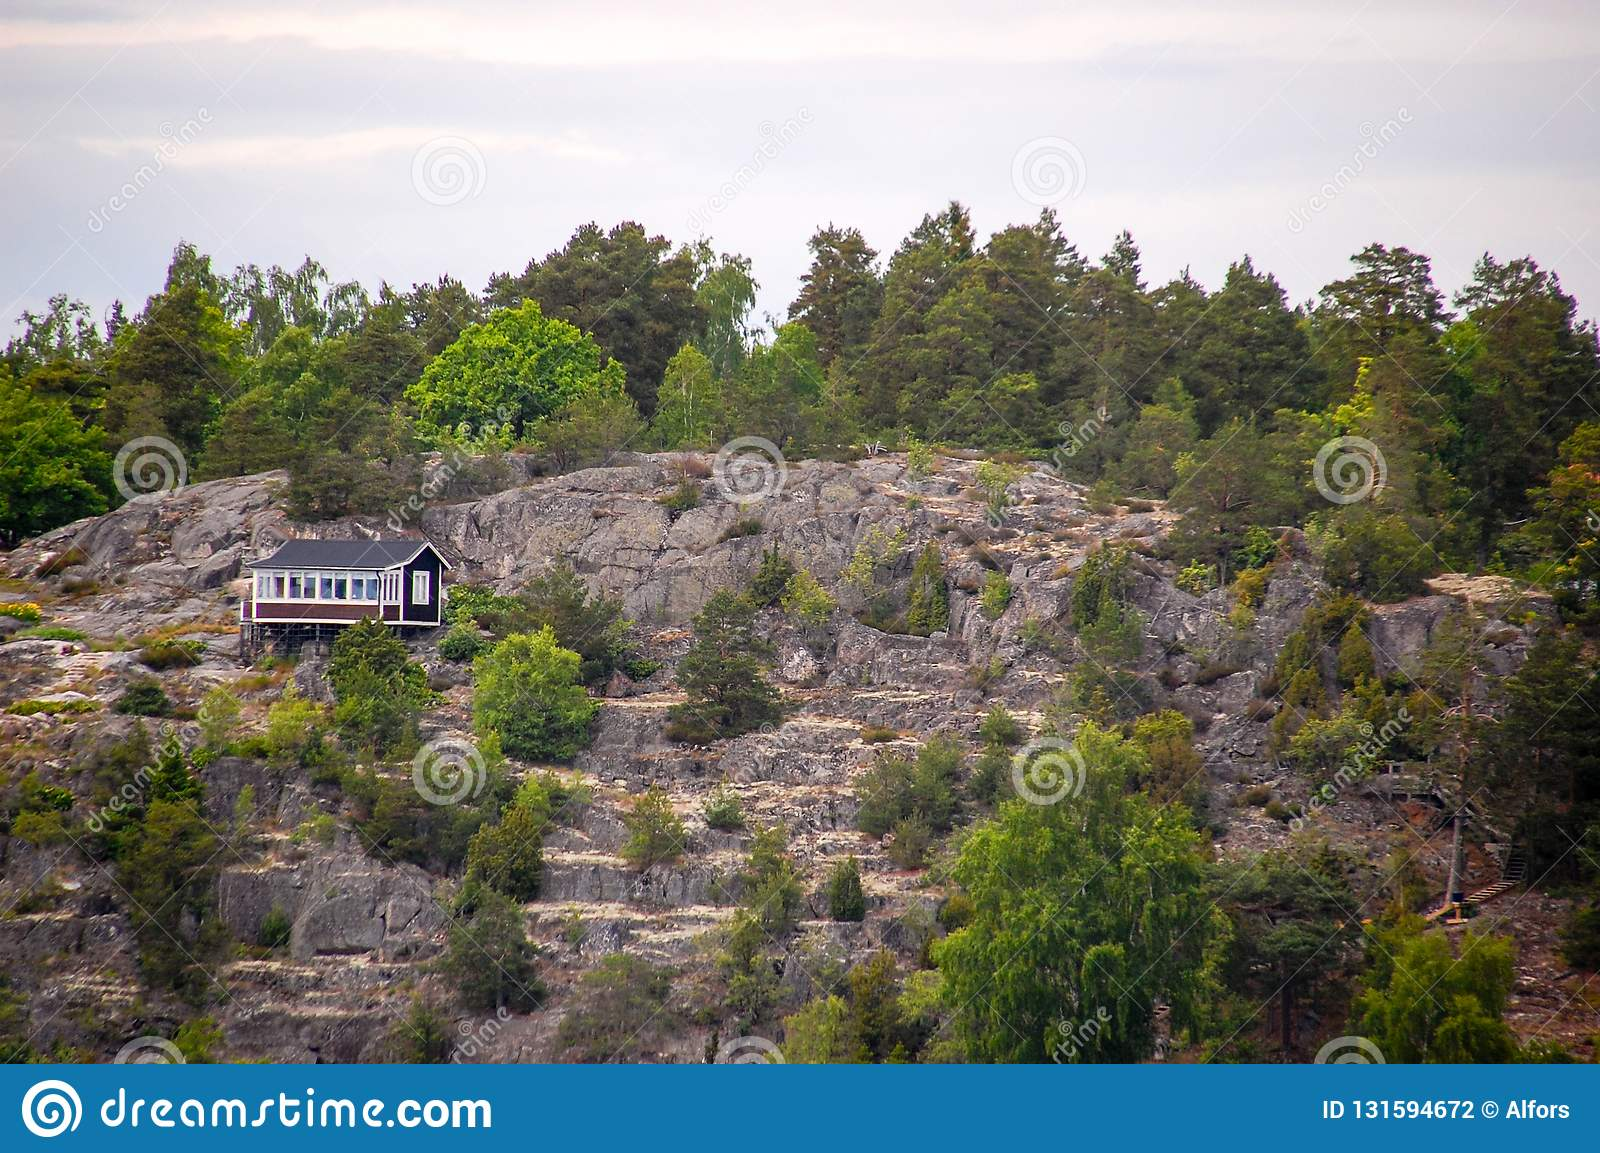 A Small House Built On The Cliffs Near The Sea Stock Photo Image